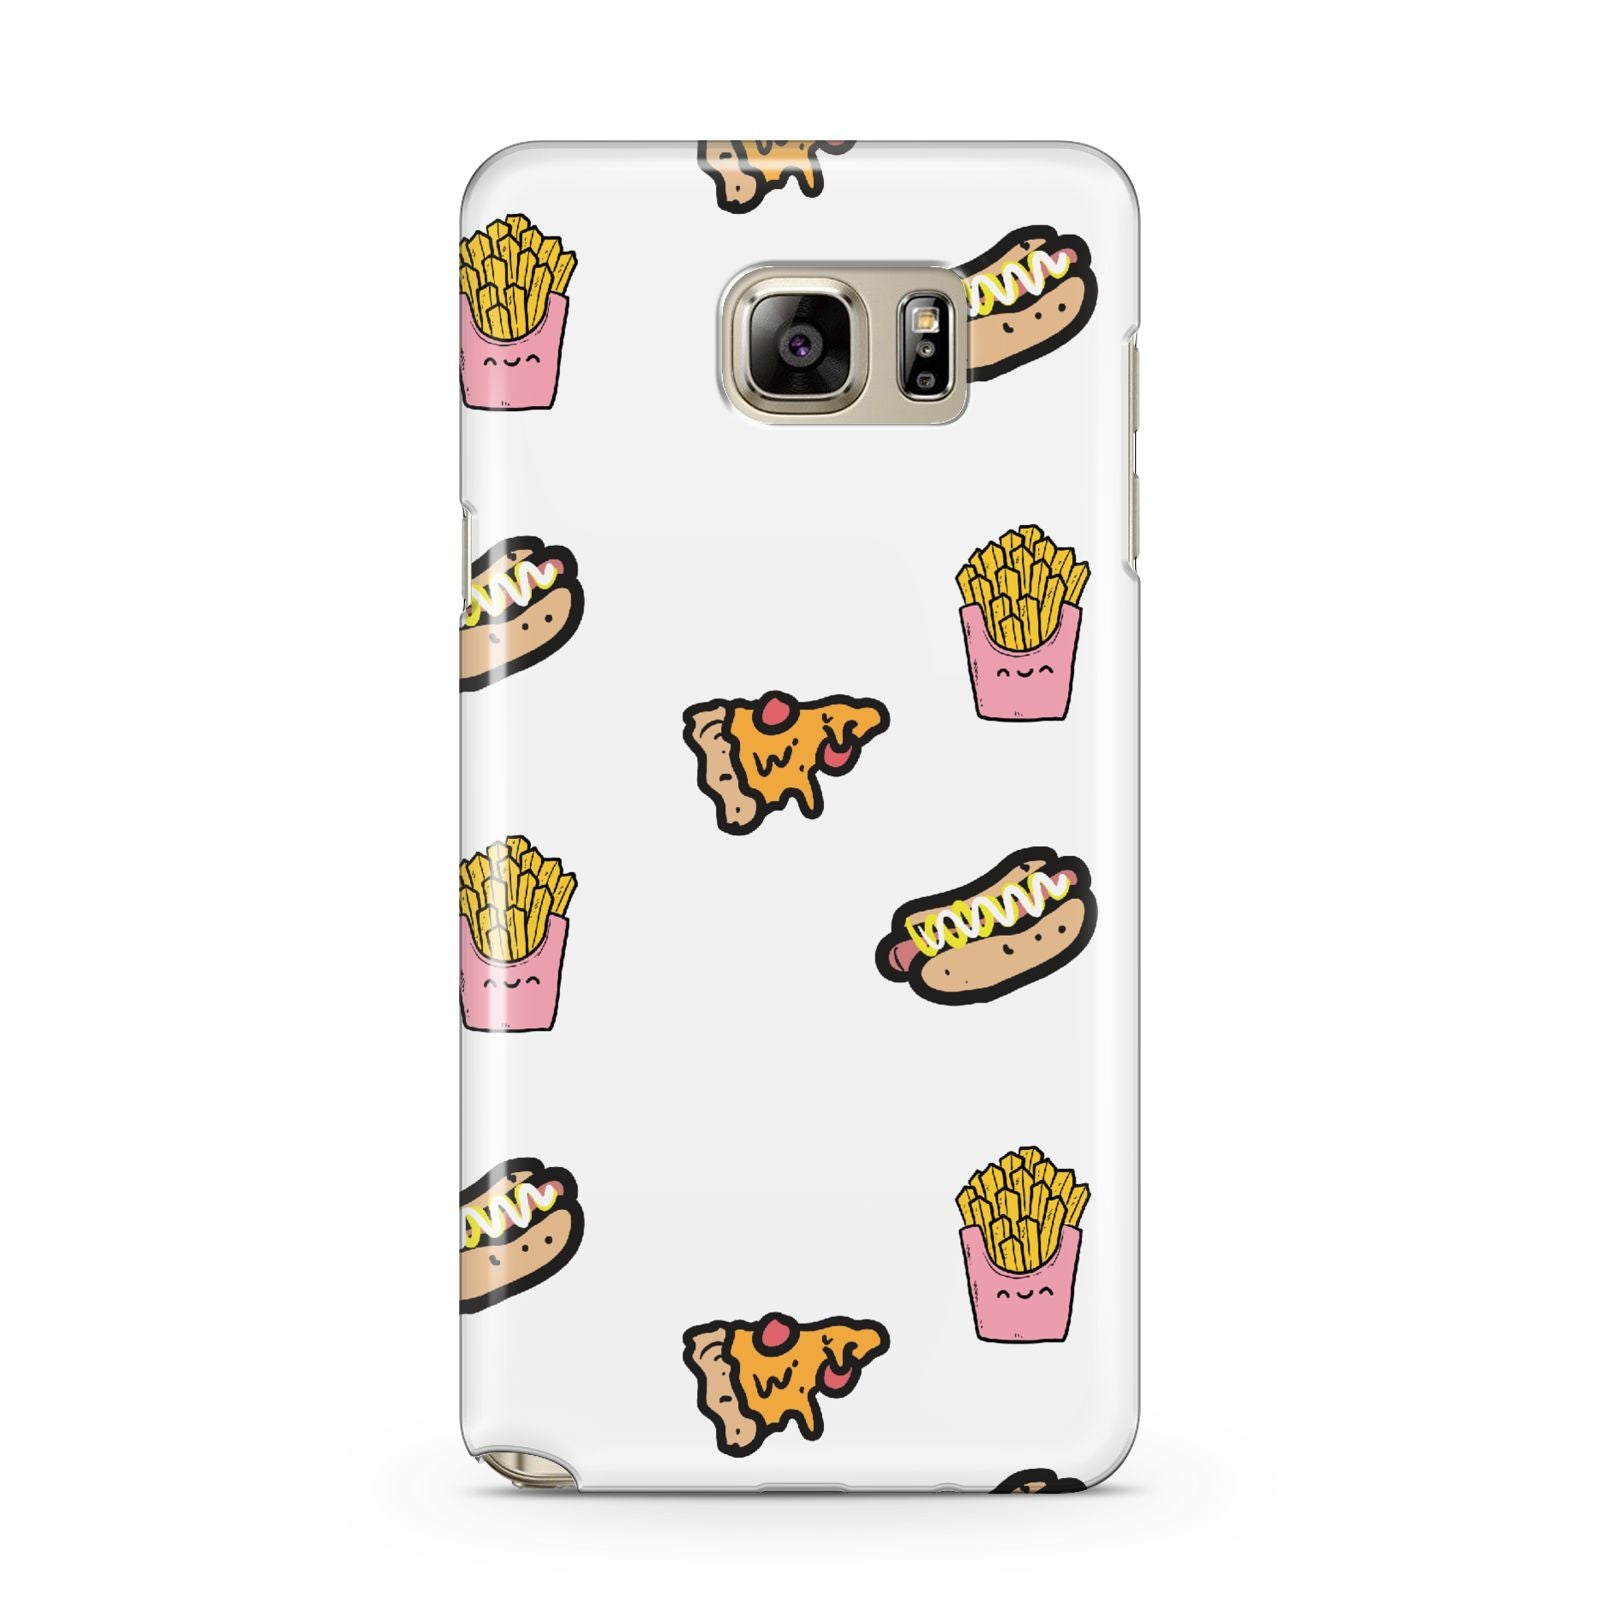 Fries Pizza Hot Dog Samsung Galaxy Note 5 Case